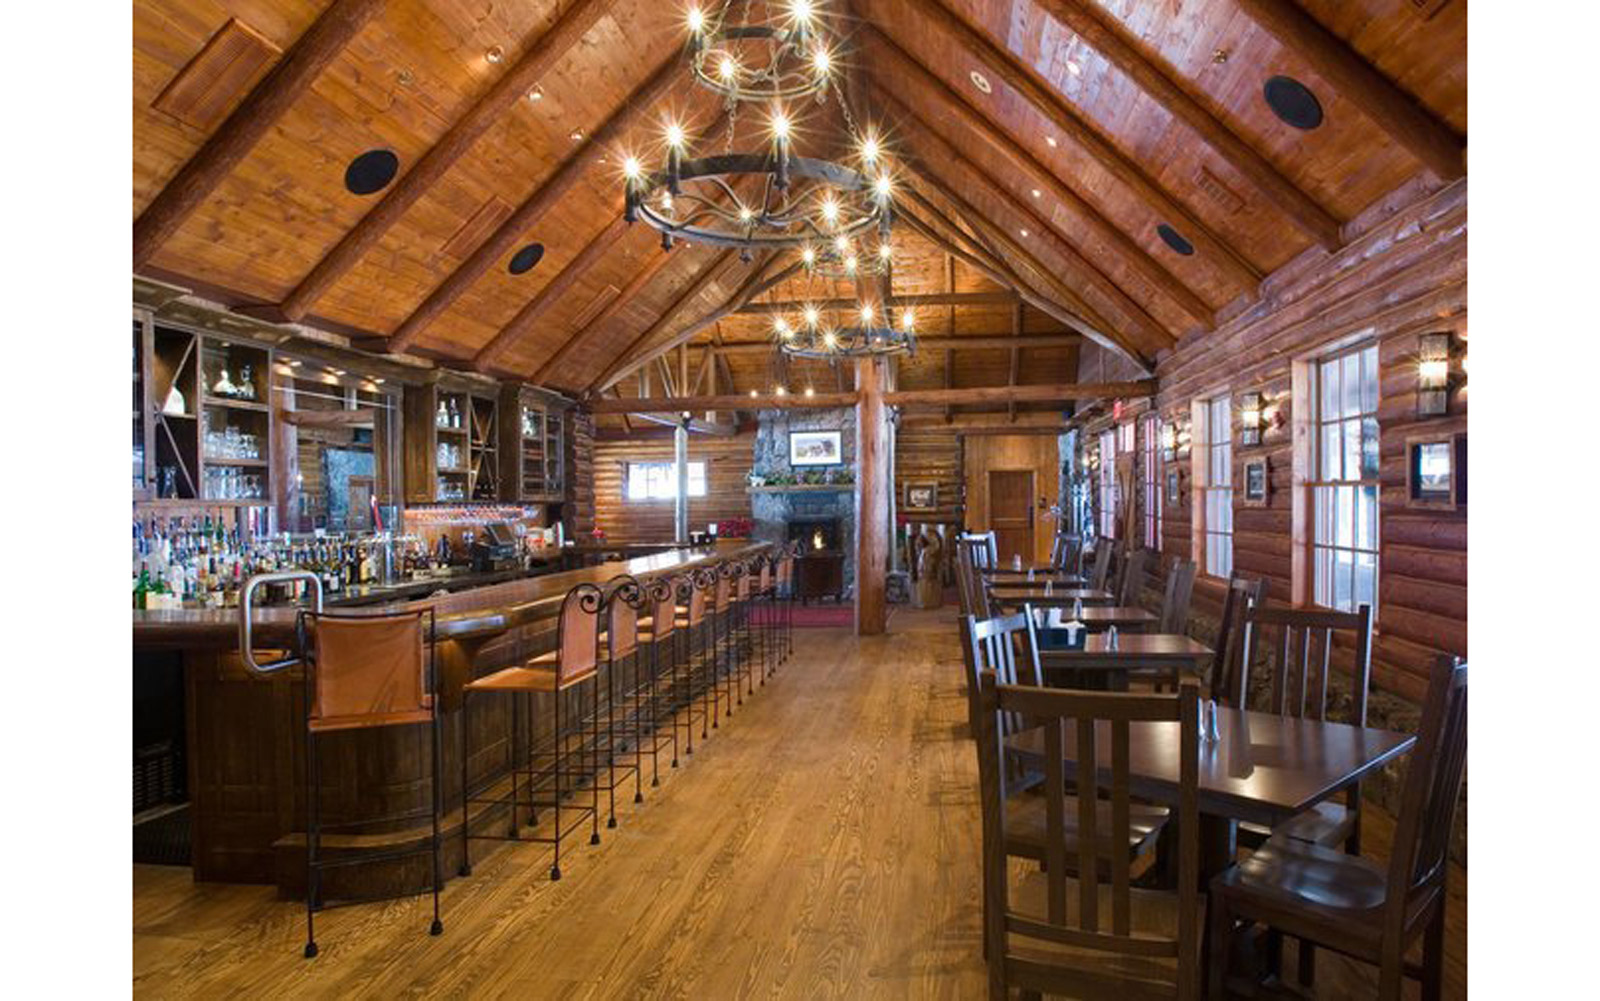 Colorado – Ranch House Restaurant & Saloon